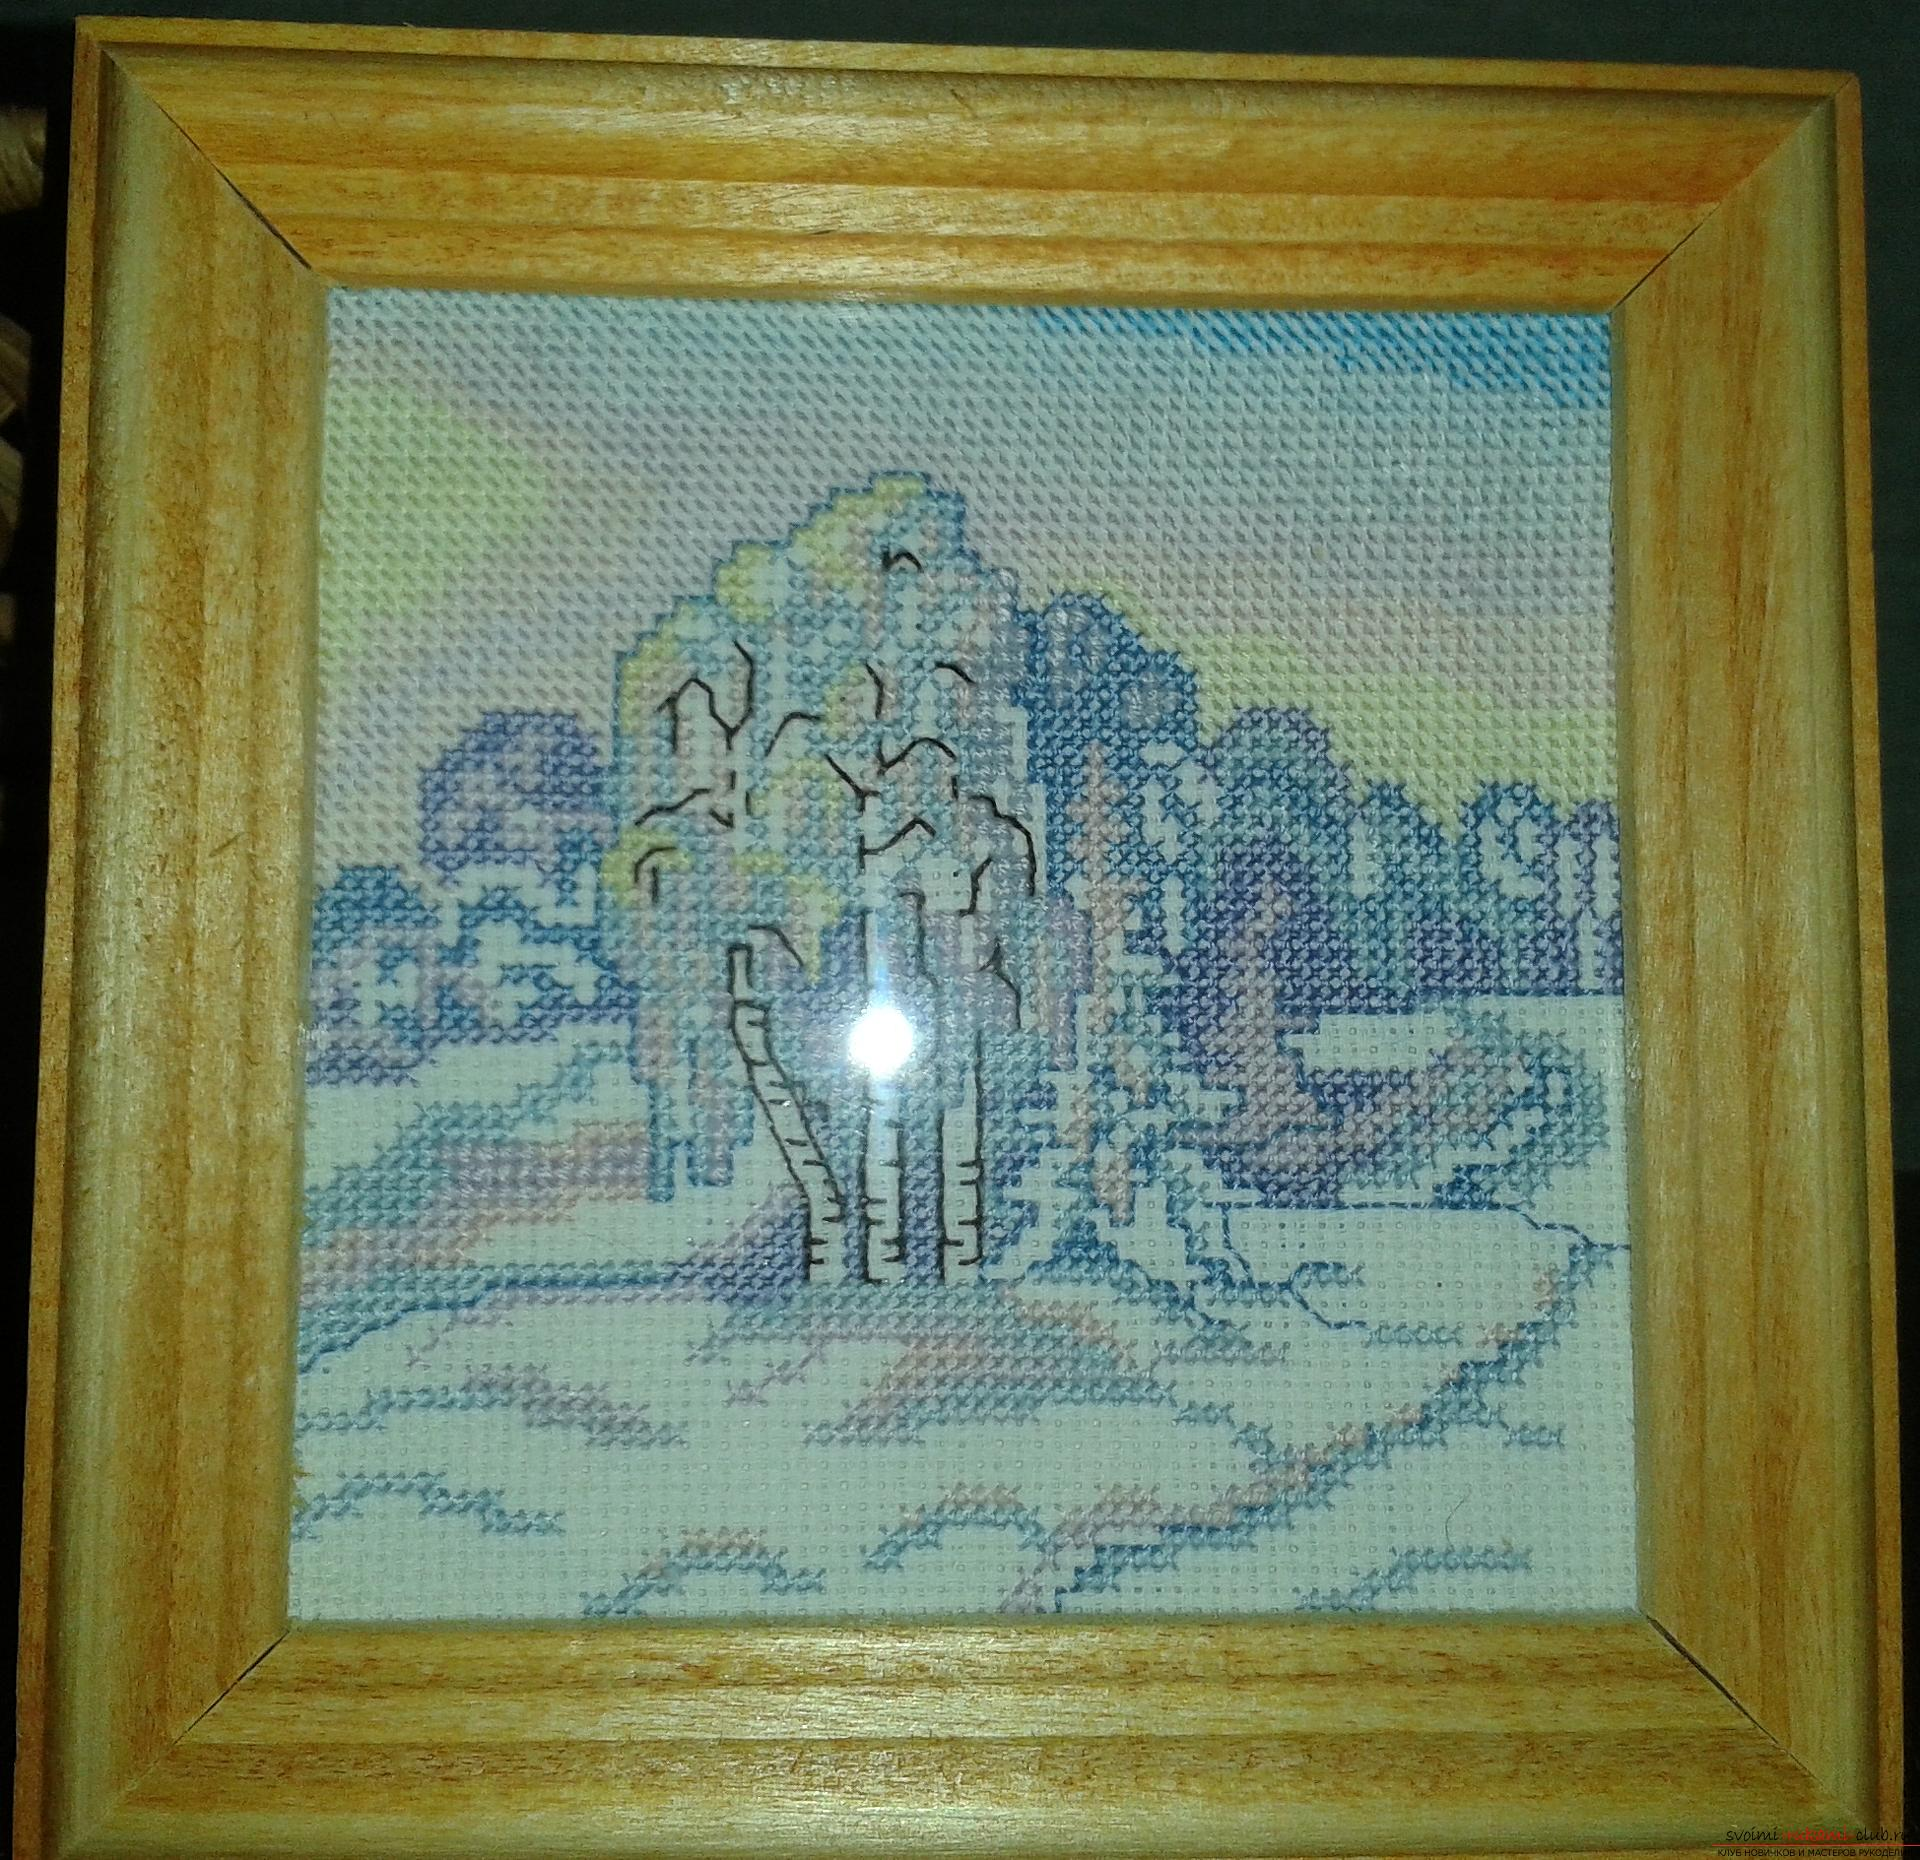 Cross-stitch embroidery is one of the earliest types of needlework, especially beautifully painted paintings embroidered with a cross .. Photo # 2